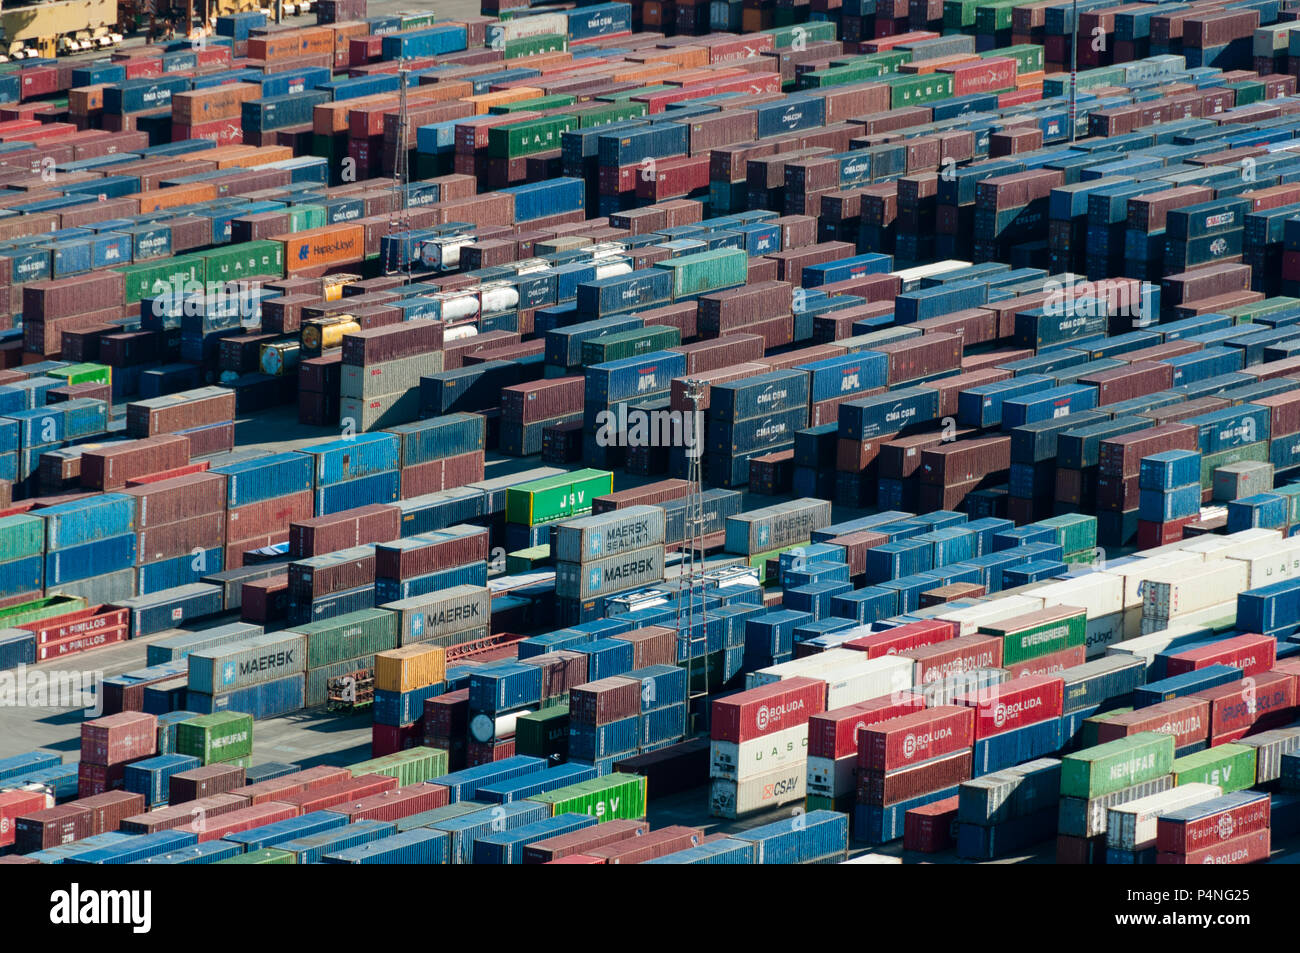 Shipping containers waiting to be loaded onto ships at Port of Barcelona - Stock Image